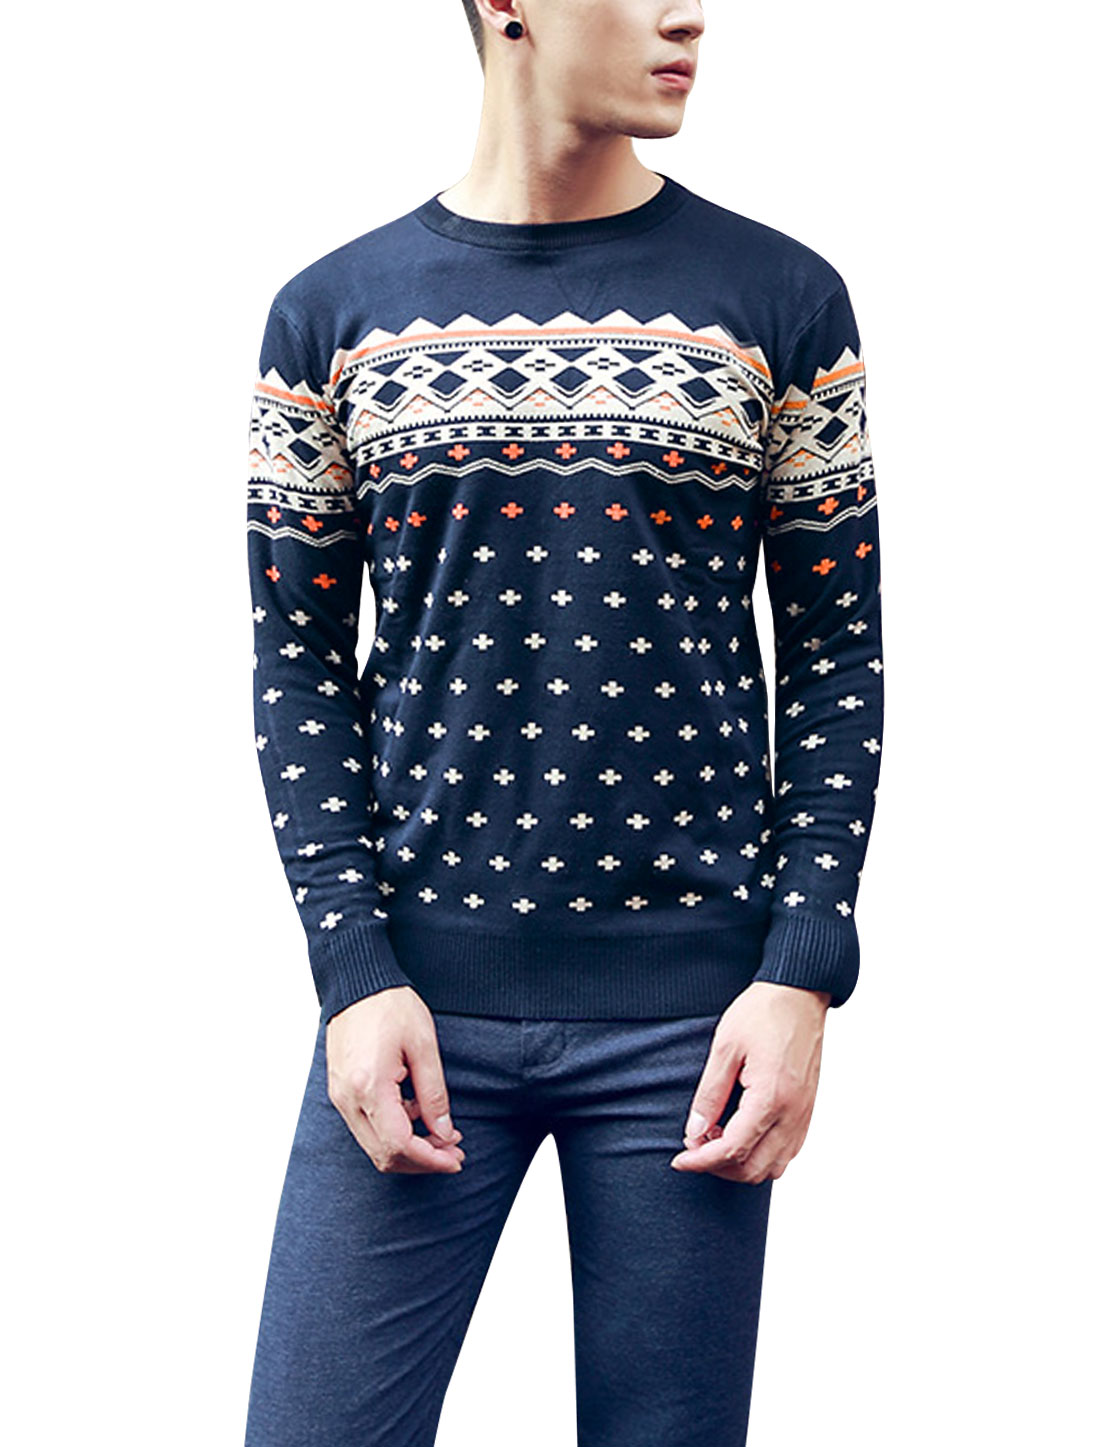 Man Plus Sign Pattern Crew Neck Pullover Navy Blue Sweater M